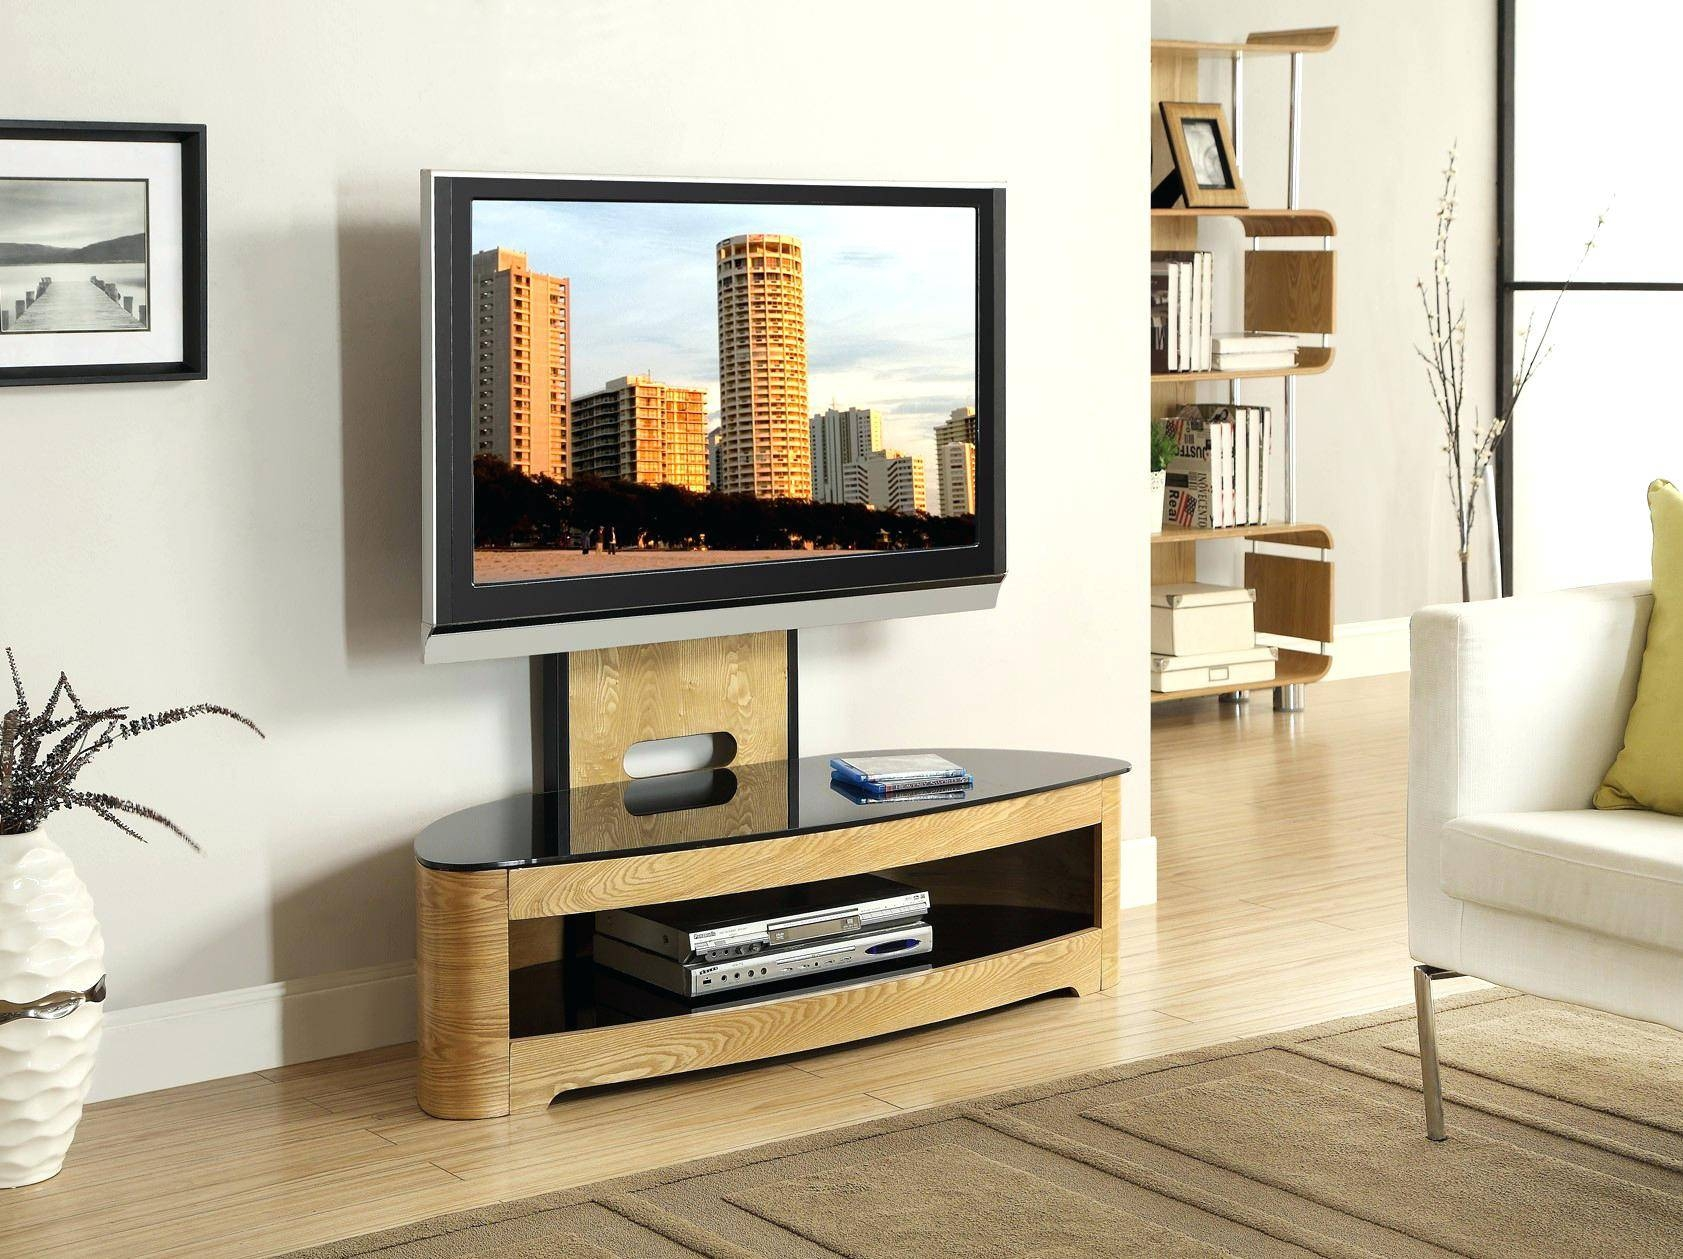 Tv Stand : Tv Stands Tv Stand Oak Oak Tv Stands For Flat Screen with Oak Tv Stands for Flat Screens (Image 13 of 15)